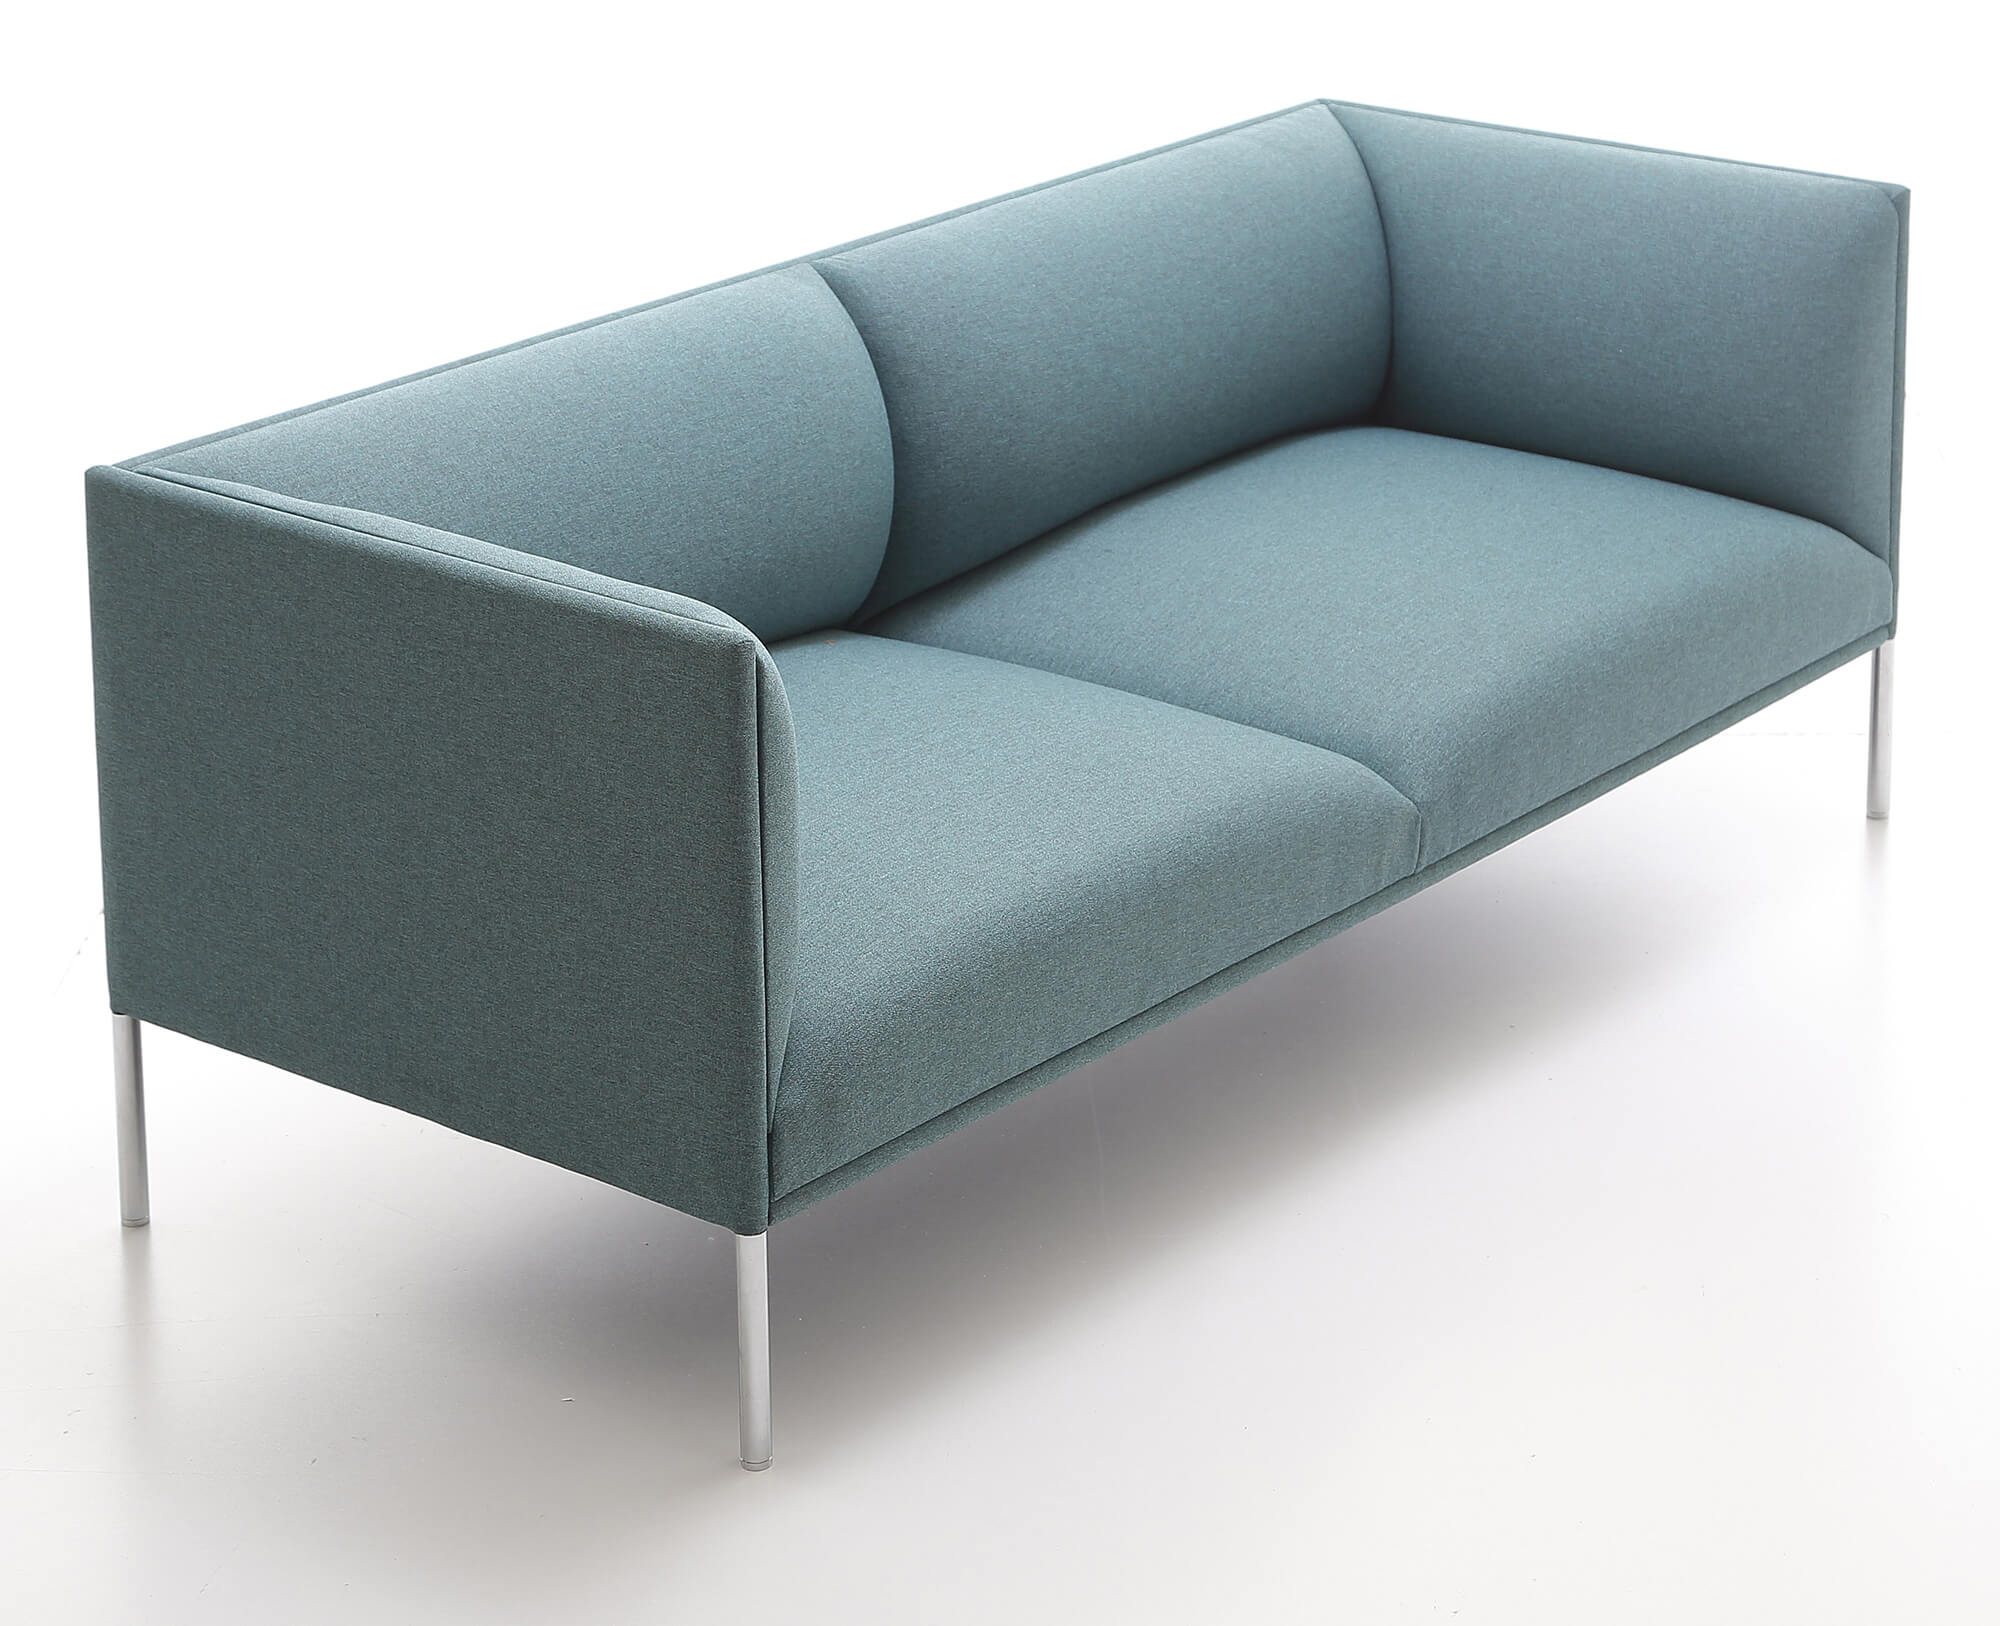 City – Watson Commercial – Sofas & Lounge Chairs For Sofa Lounge Chairs (View 11 of 15)